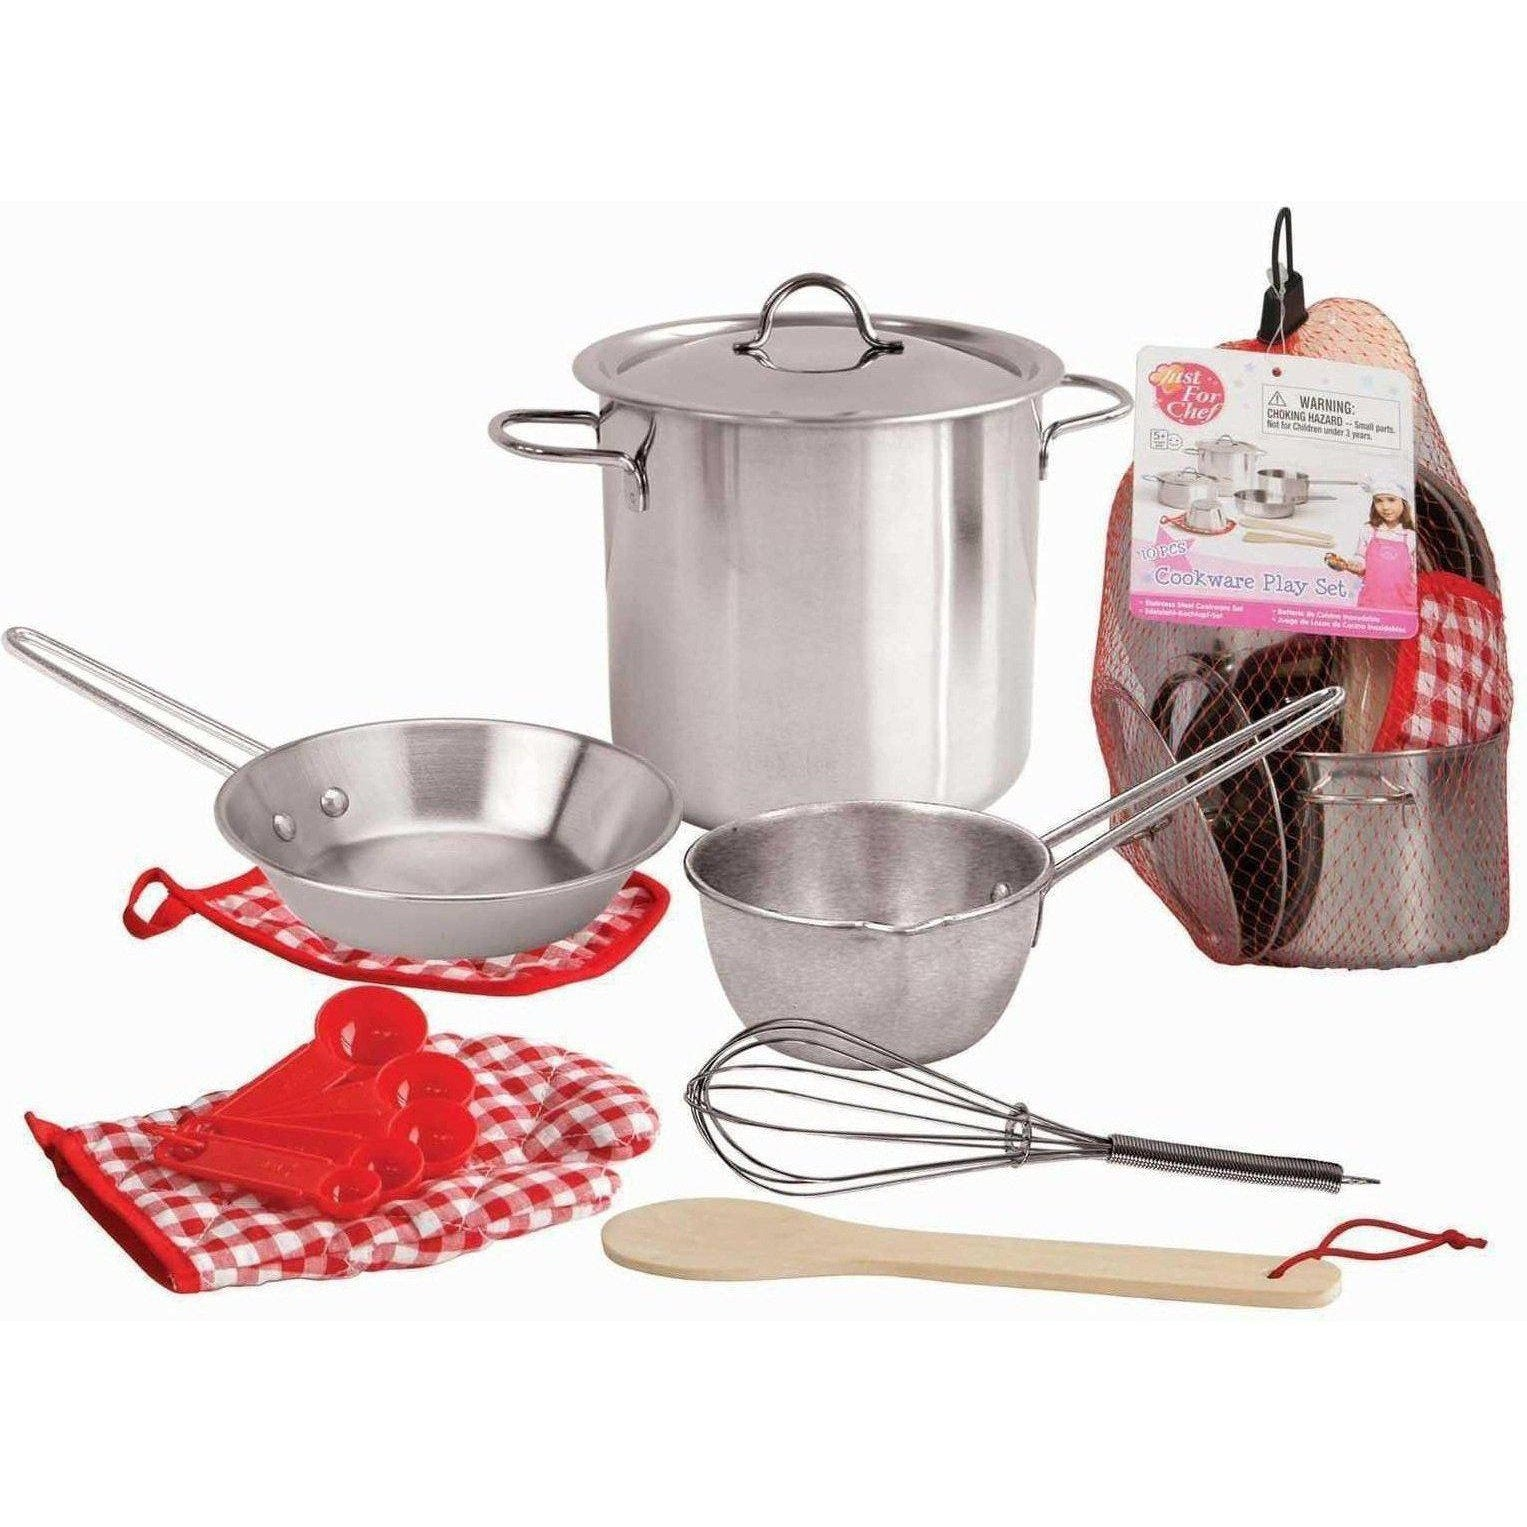 Toy Stainless Steel Cooking Play Set, Shop Now for Australia Delivery at Kids Mega Mart